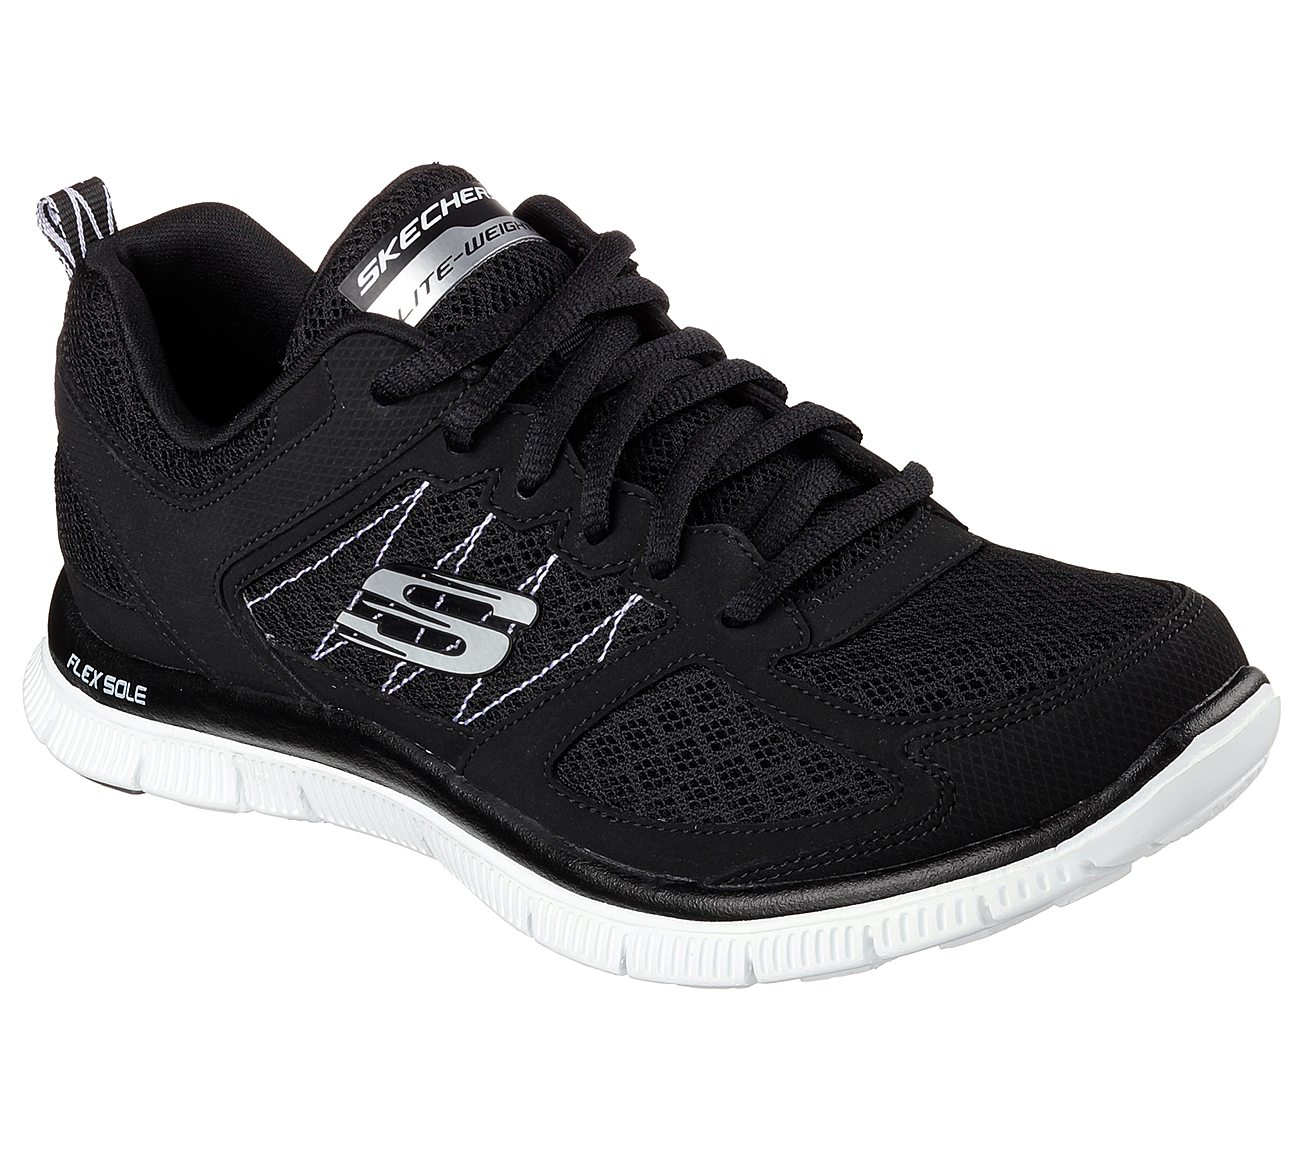 271b45d3d89 Buy SKECHERS Flex Appeal - Epicenter Sport Shoes only  70.00